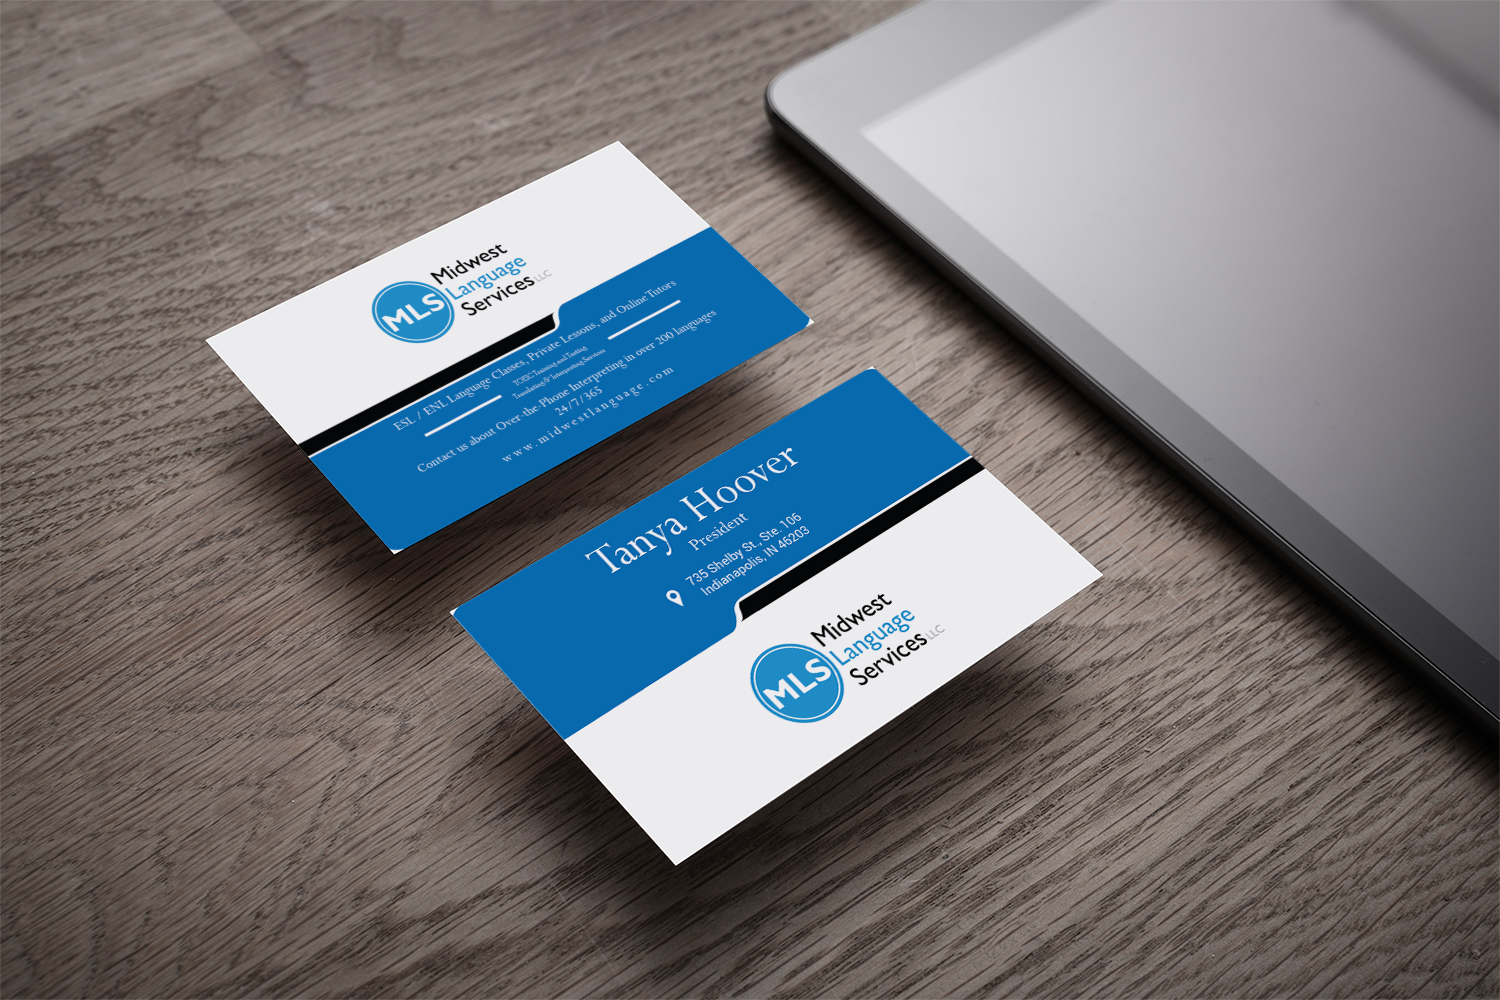 Serious modern business business card design for midwest language business card design by pixel art studio for midwest language services llc design reheart Image collections